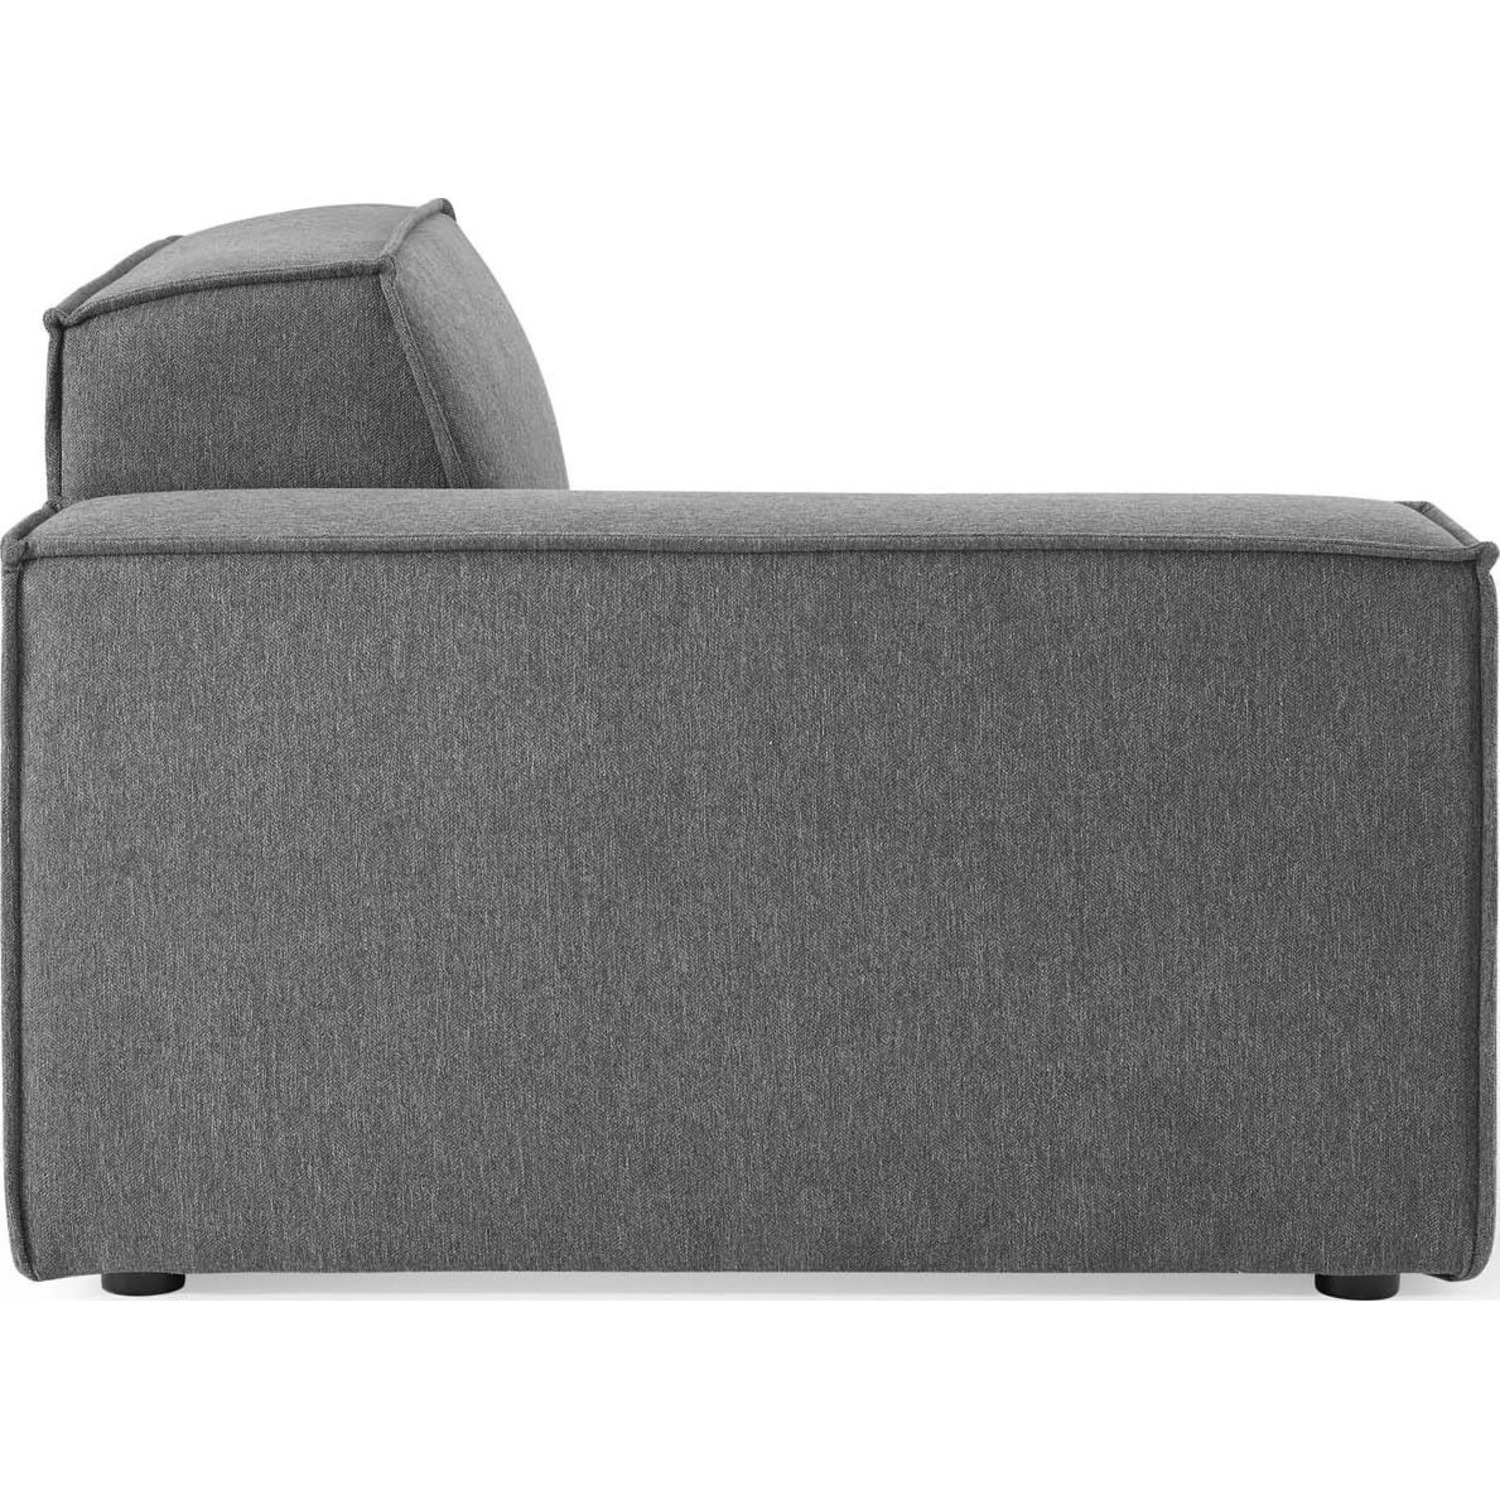 4-Piece Sectional Sofa In Charcoal Foam Padding - image-6